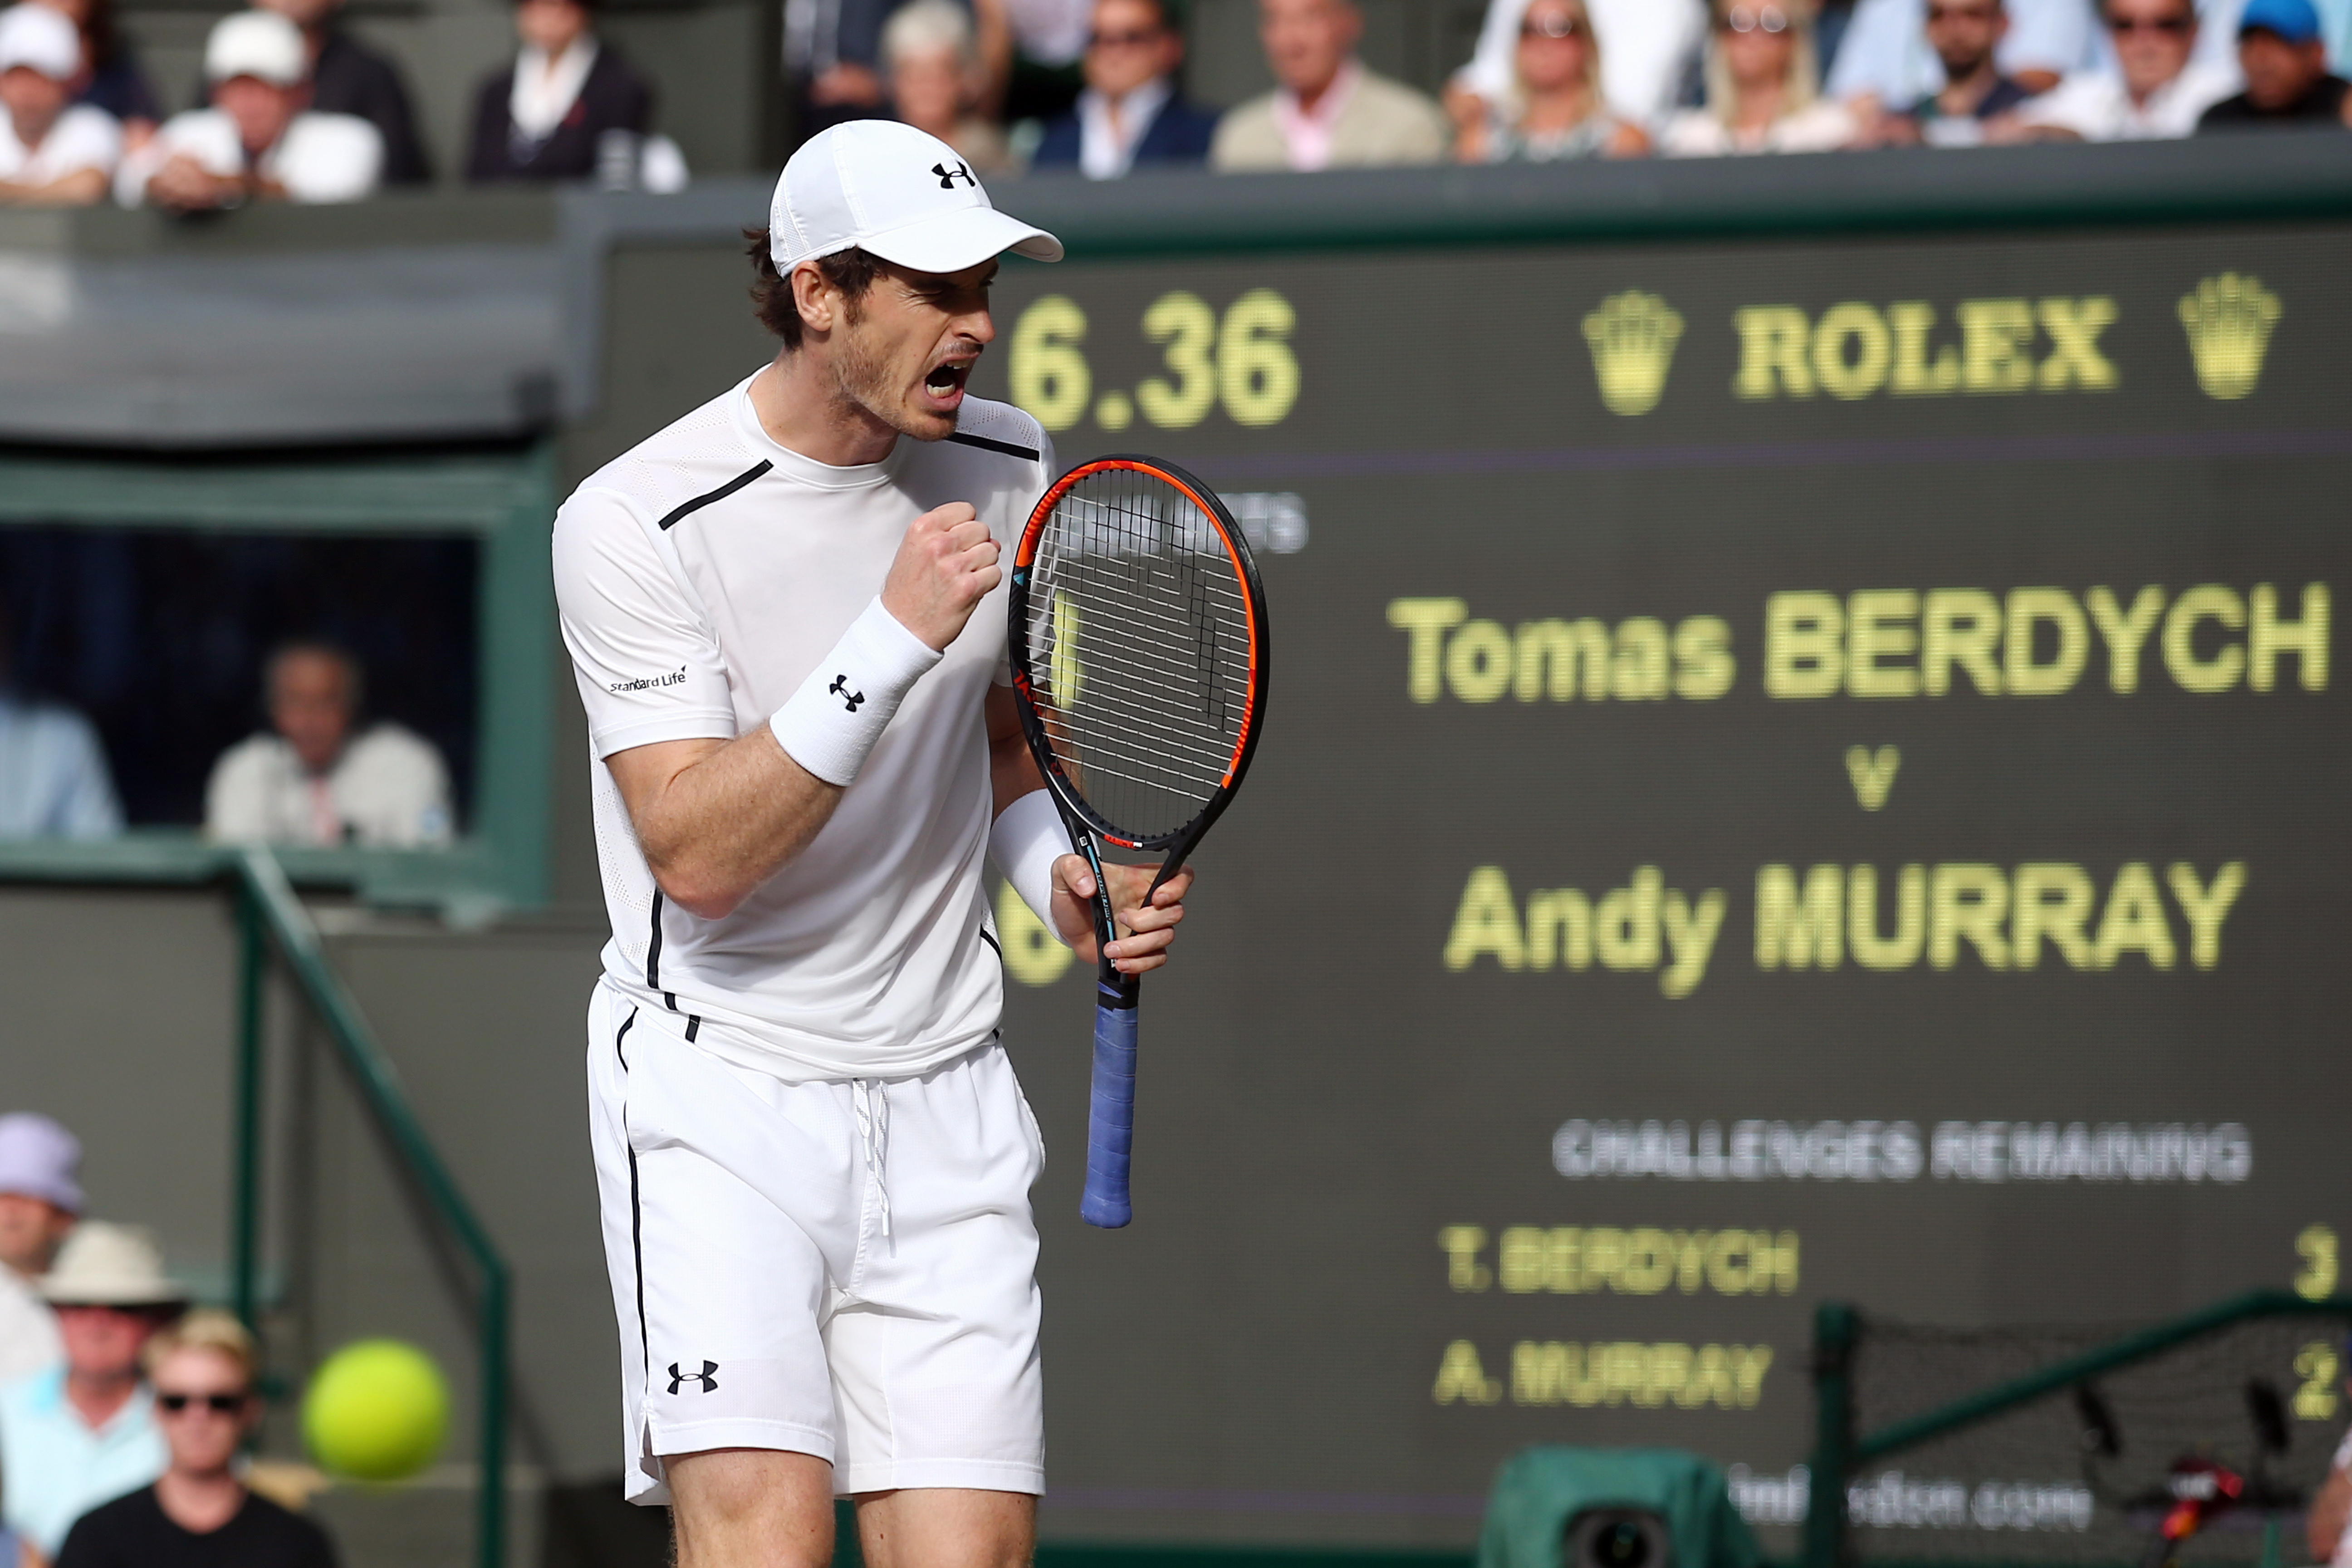 Andy Murray of Britain celebrates after beating Tomas Berdych of the Czech Republic in their men's semifinal singles match on day twelve of the Wimbledon Tennis Championships in London, Friday, July 8, 2016. (Justin Tallis/Pool Photo via AP)